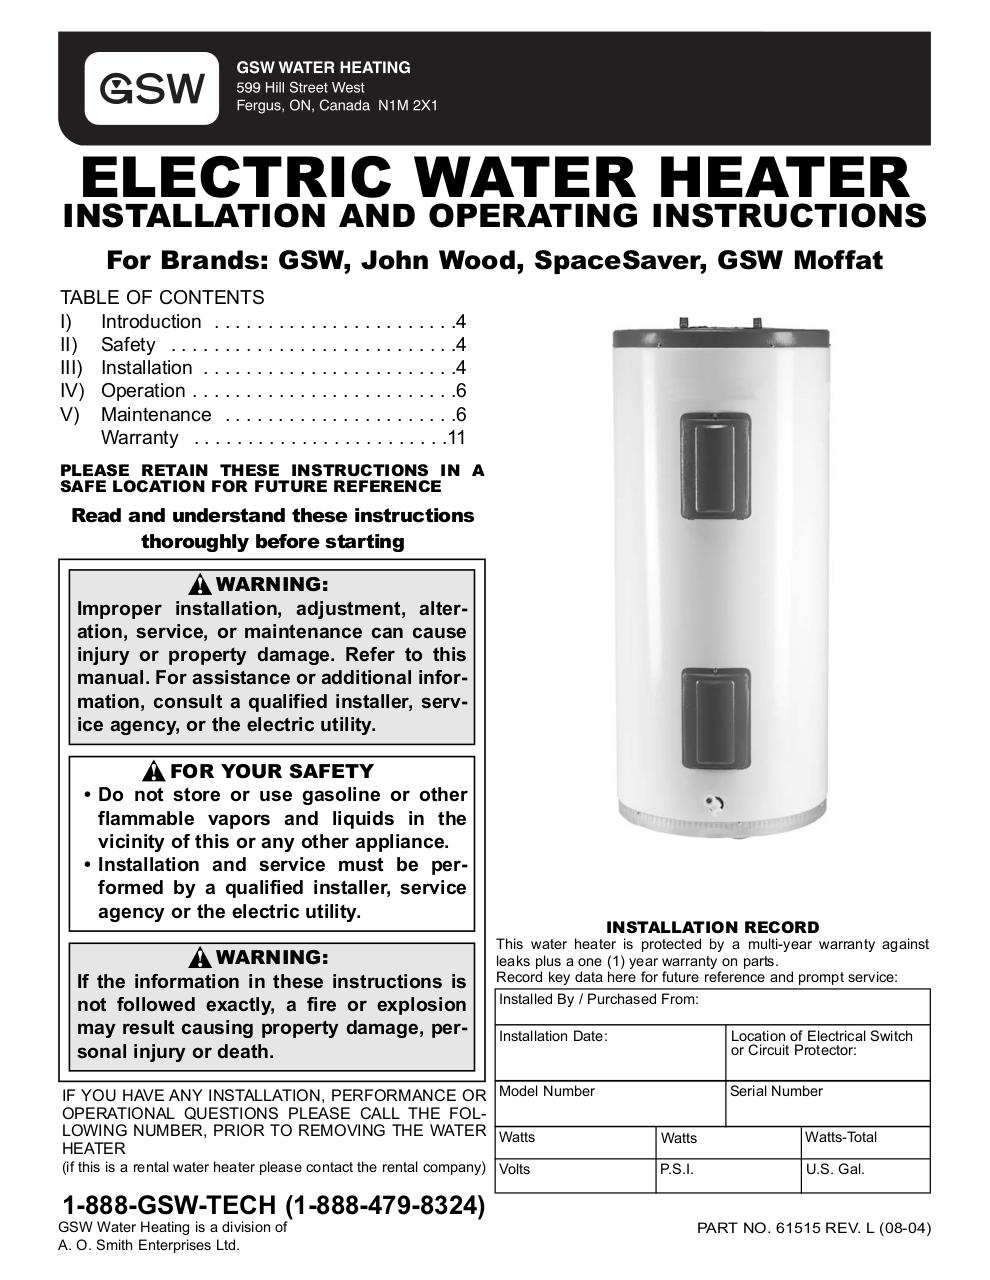 615151lqxd By Main User Townhouse Hot Water Heater Instructions How To Replace An Electric Instructionspdf Page 1 12